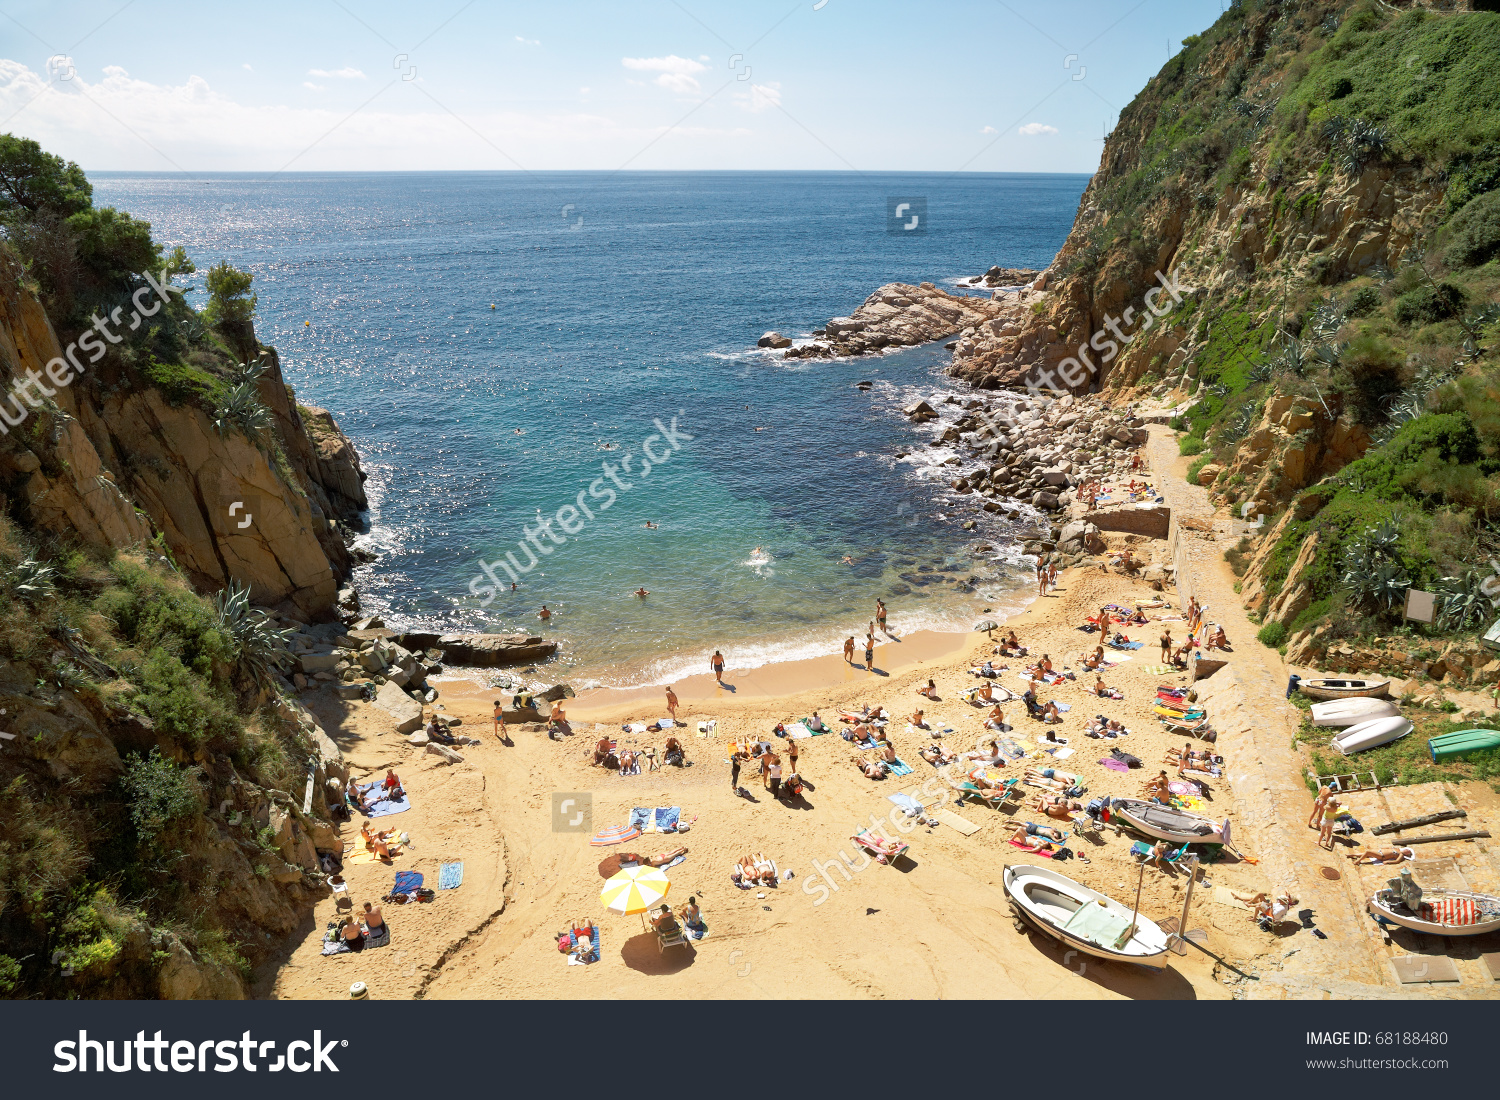 View Small Cove Comfortable Beach Costa Stock Photo 68188480.